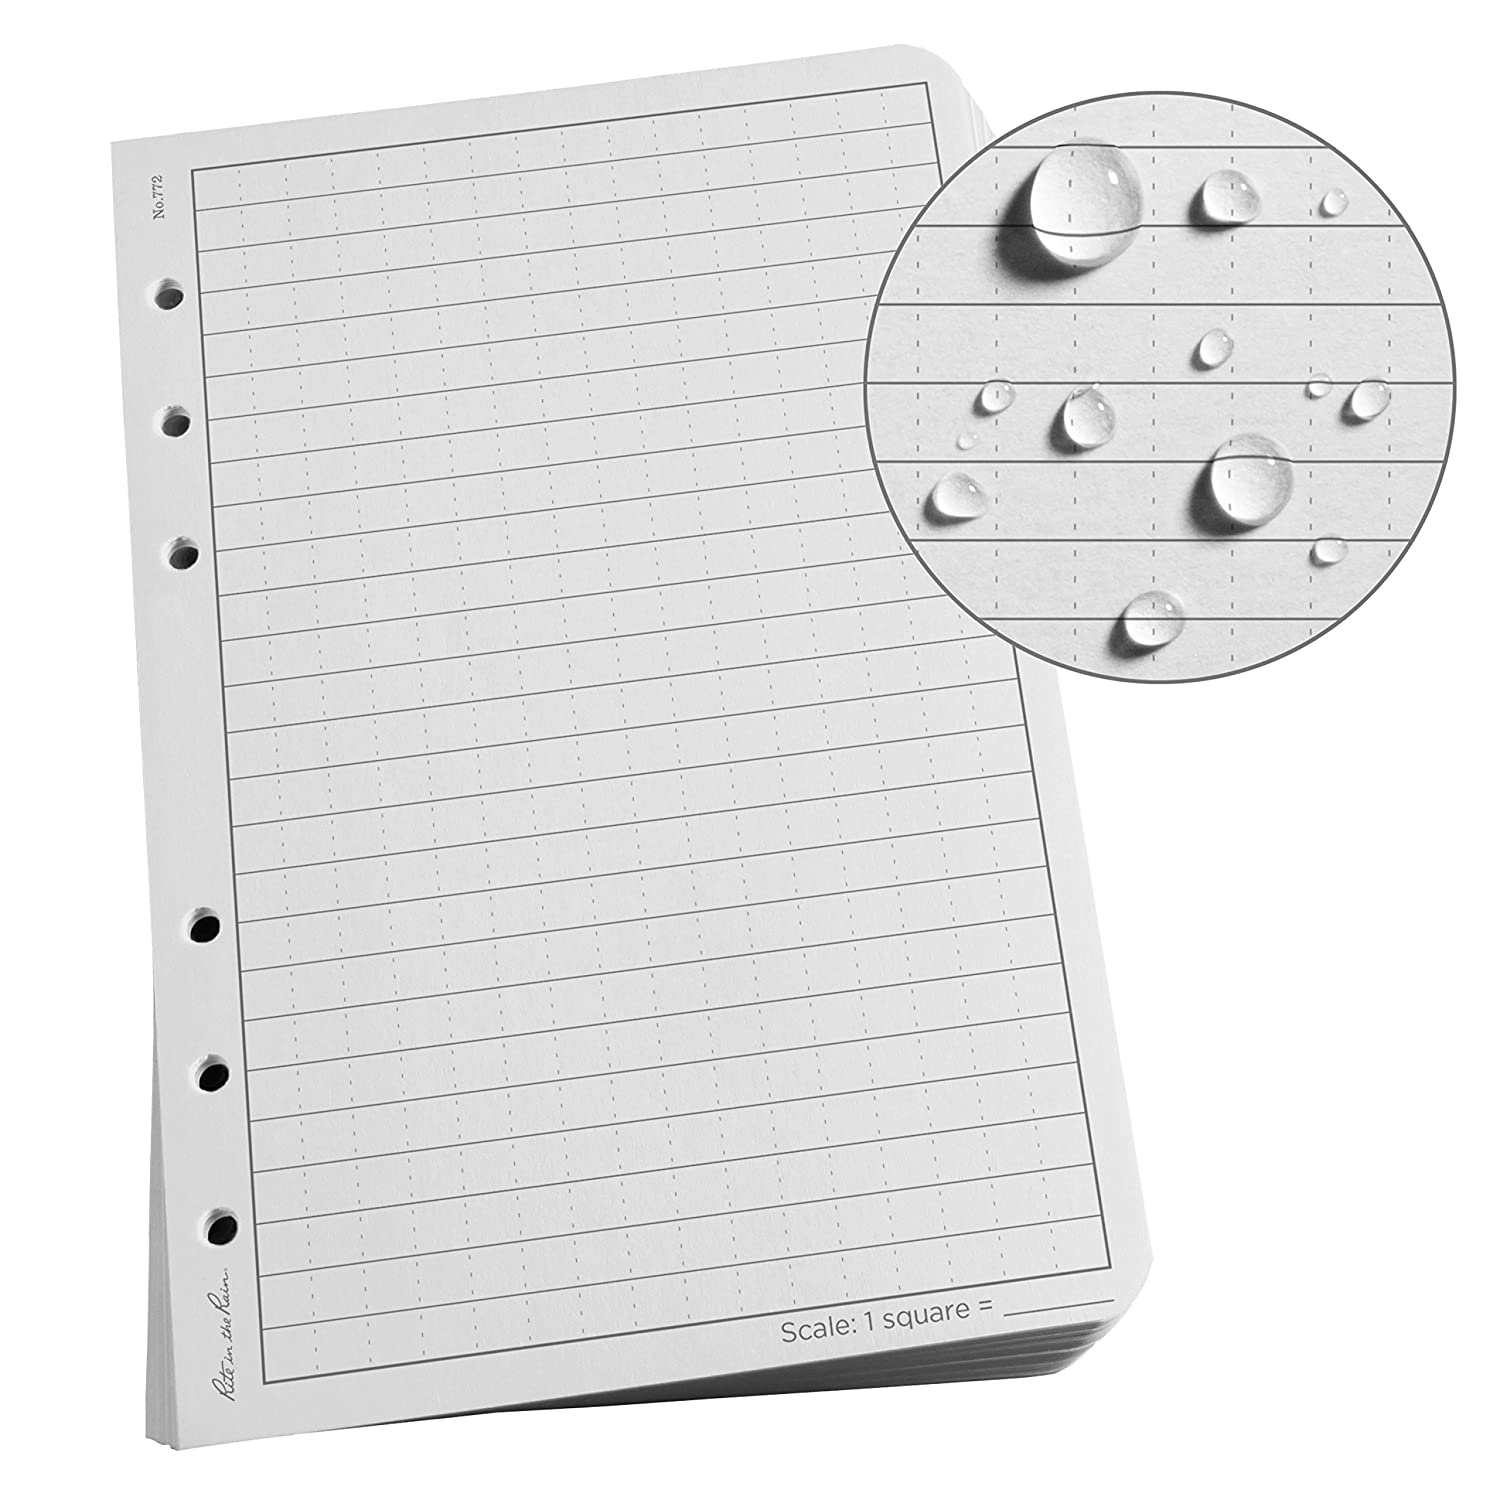 Rite in the Rain All-Weather Loose Leaf Paper, 4 5/8' x 7', 32# Gray, Universal Pattern, 100 Sheet Pack (No. 772)